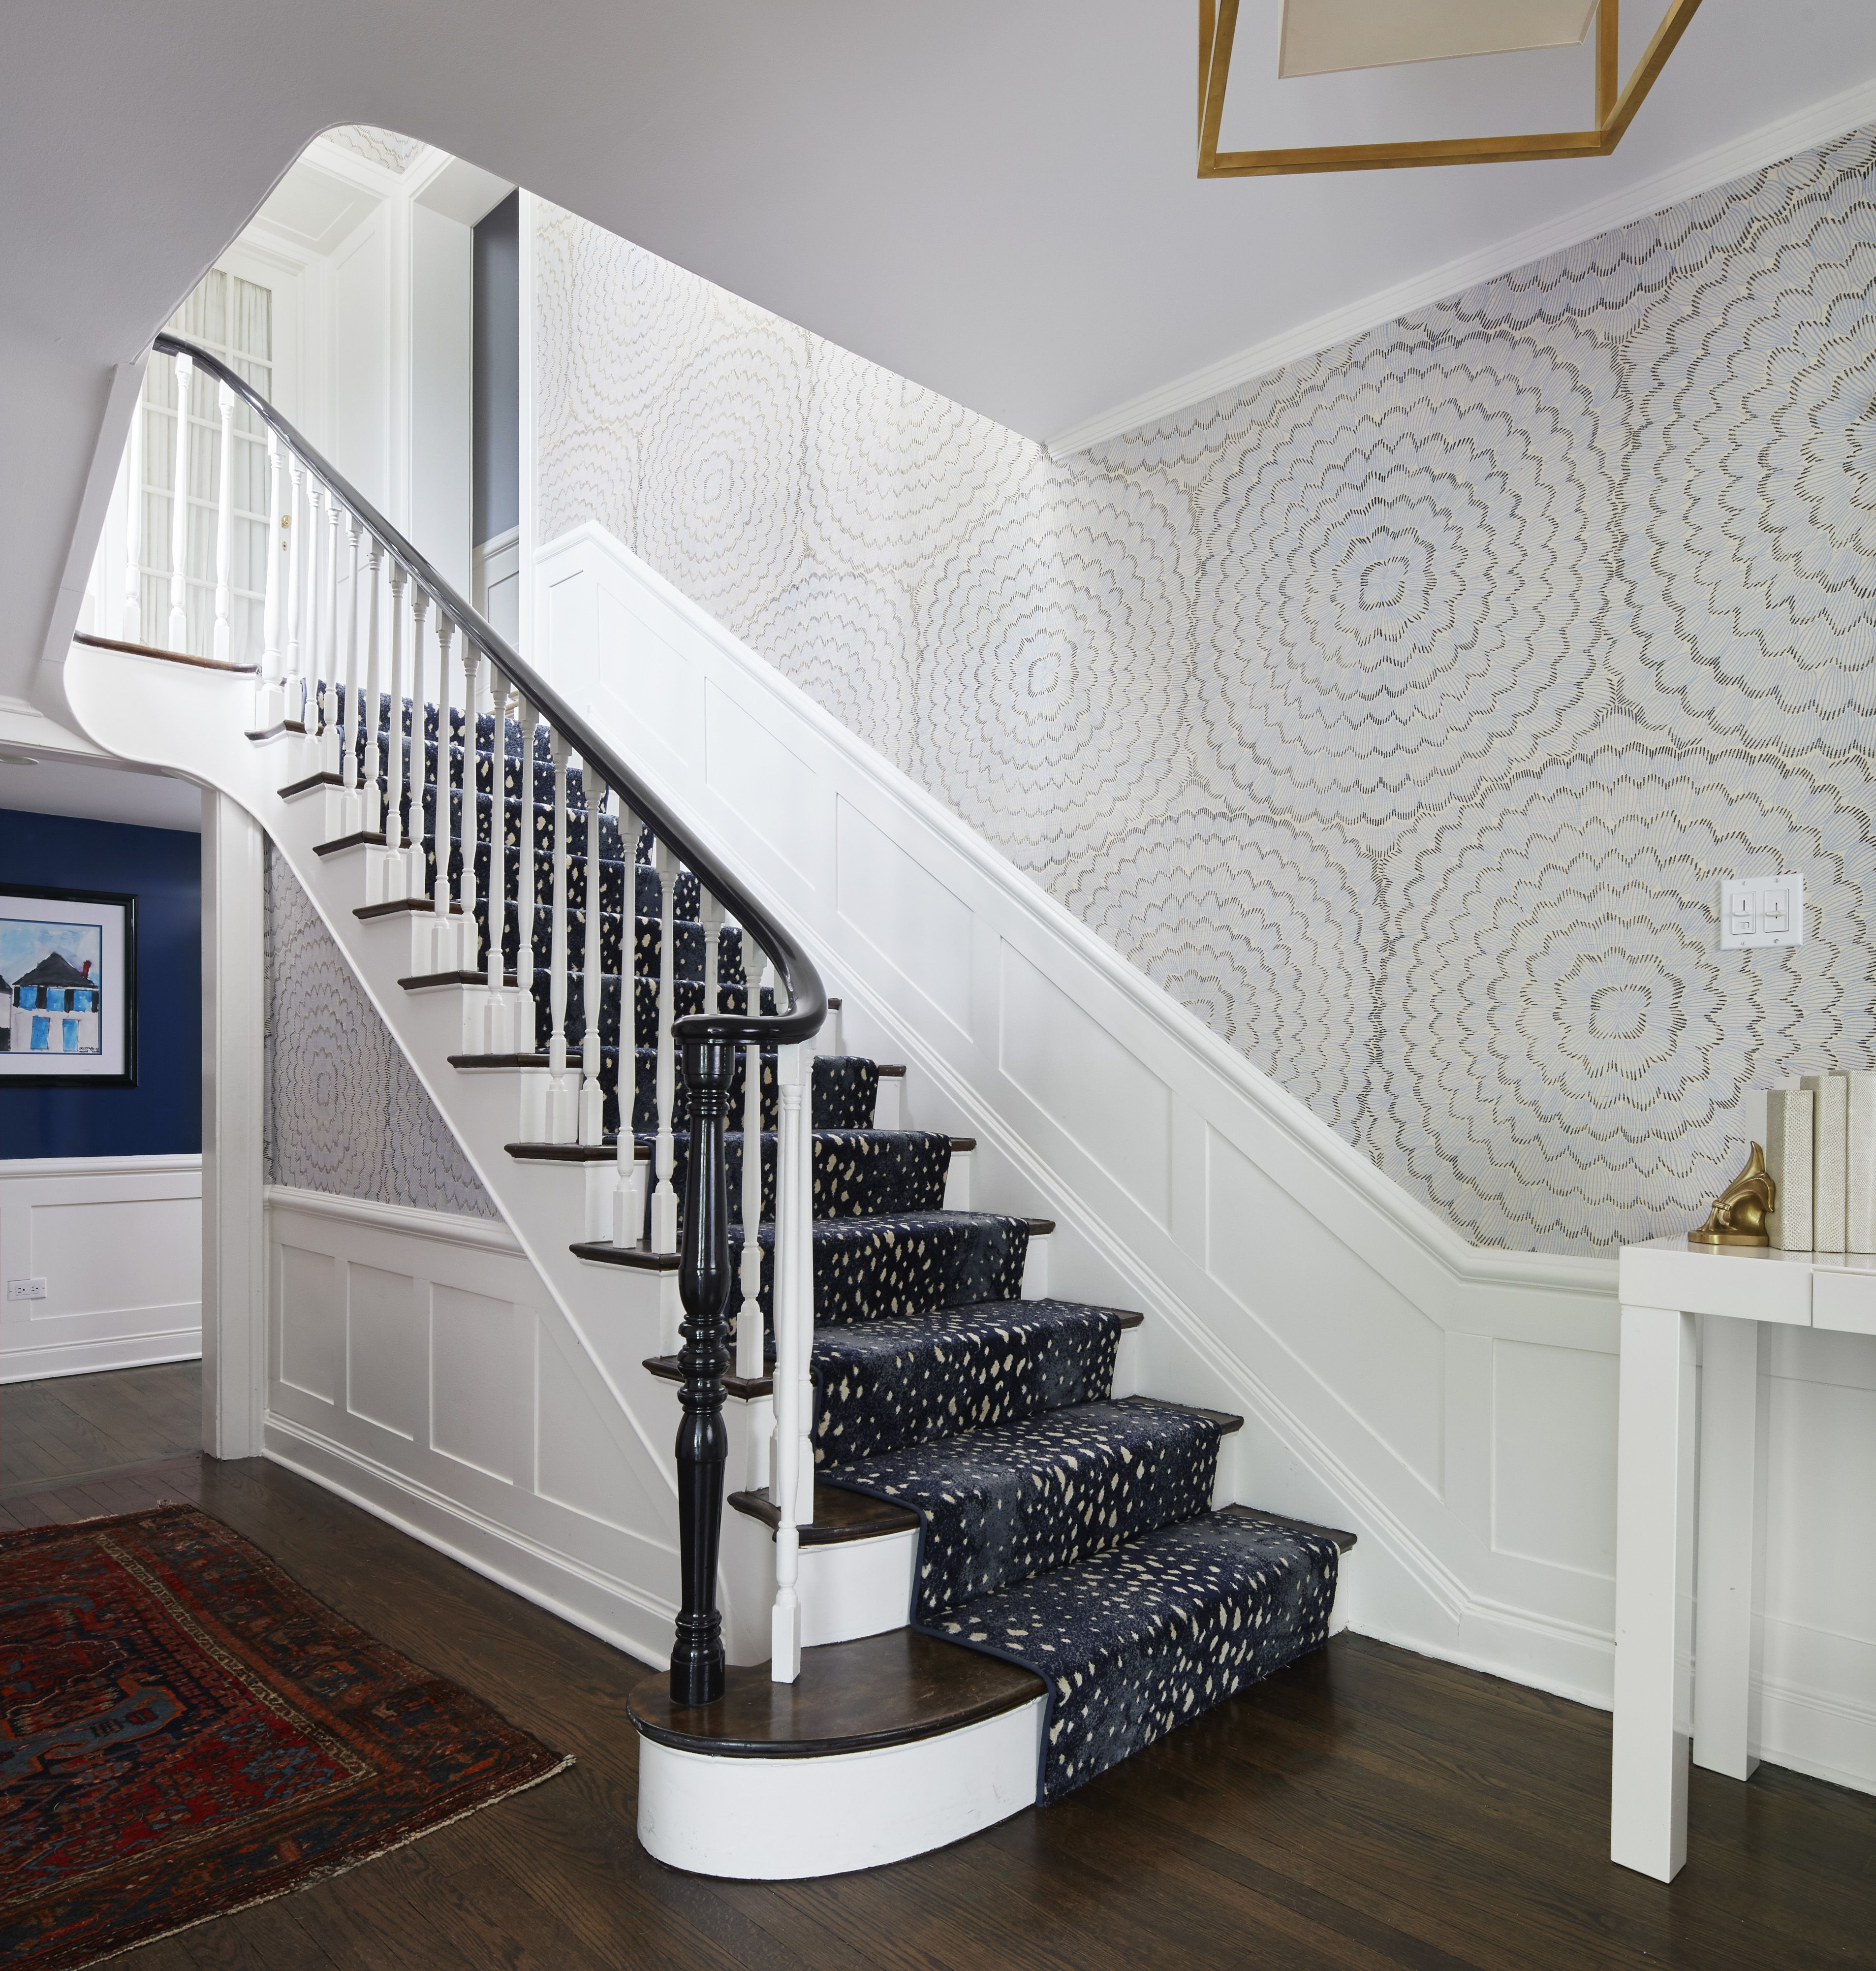 25 Stunning Carpeted Staircase Ideas Most Beautiful Staircase